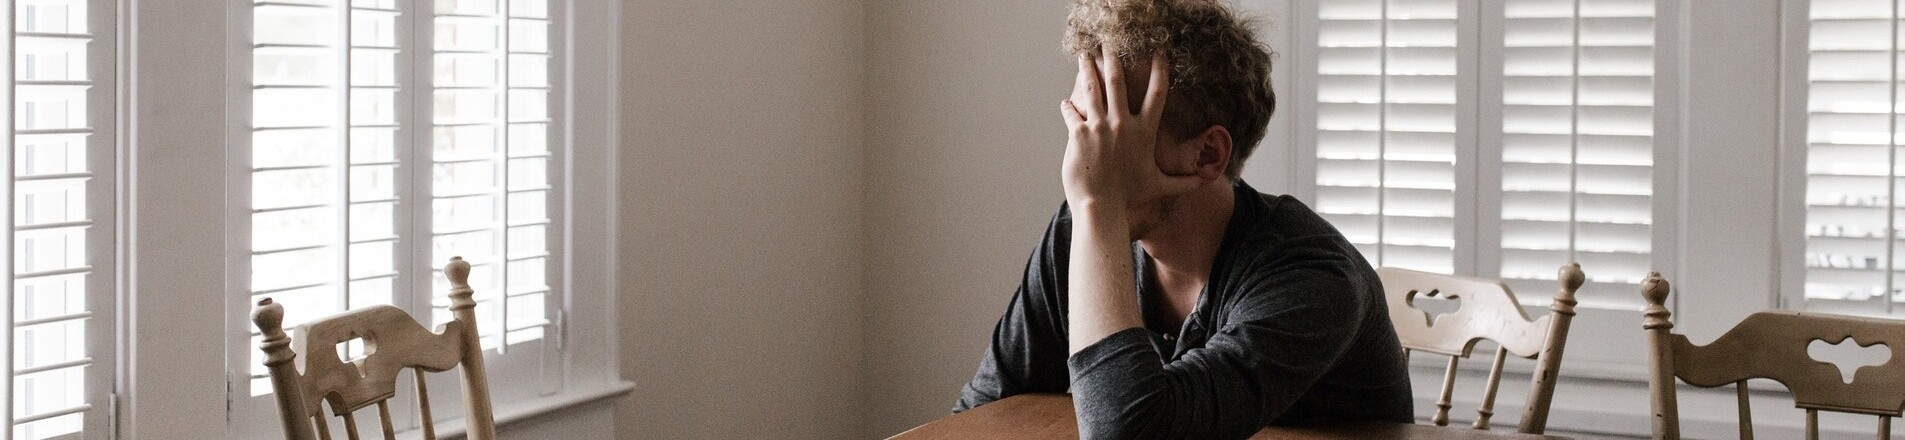 Mental Health Services horribly underfunded